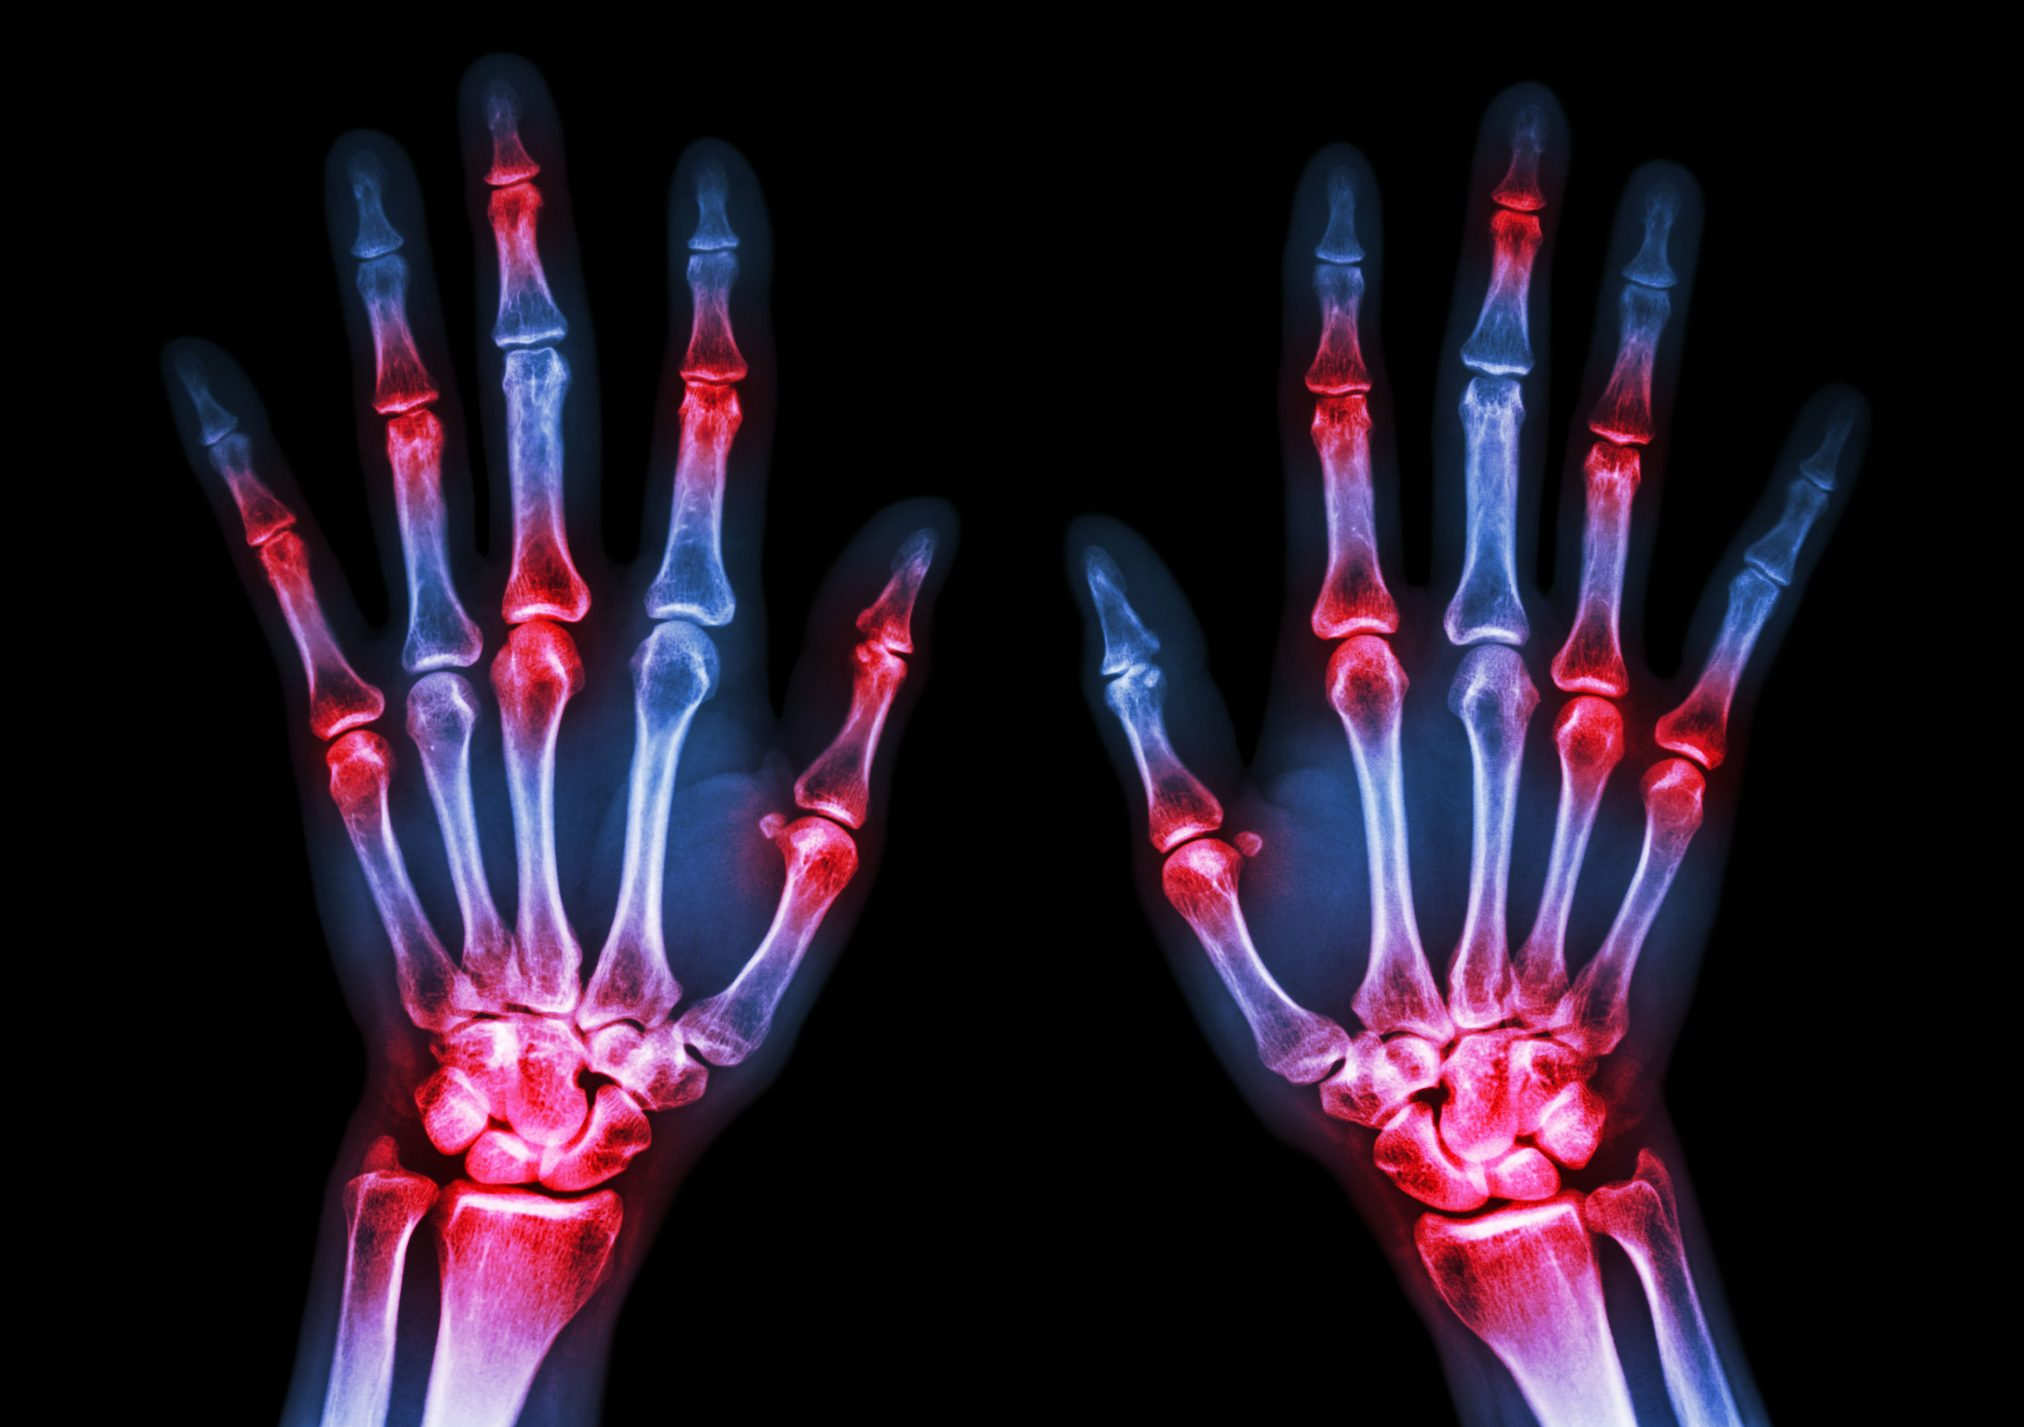 arthritis gout inflammation sore hands joints